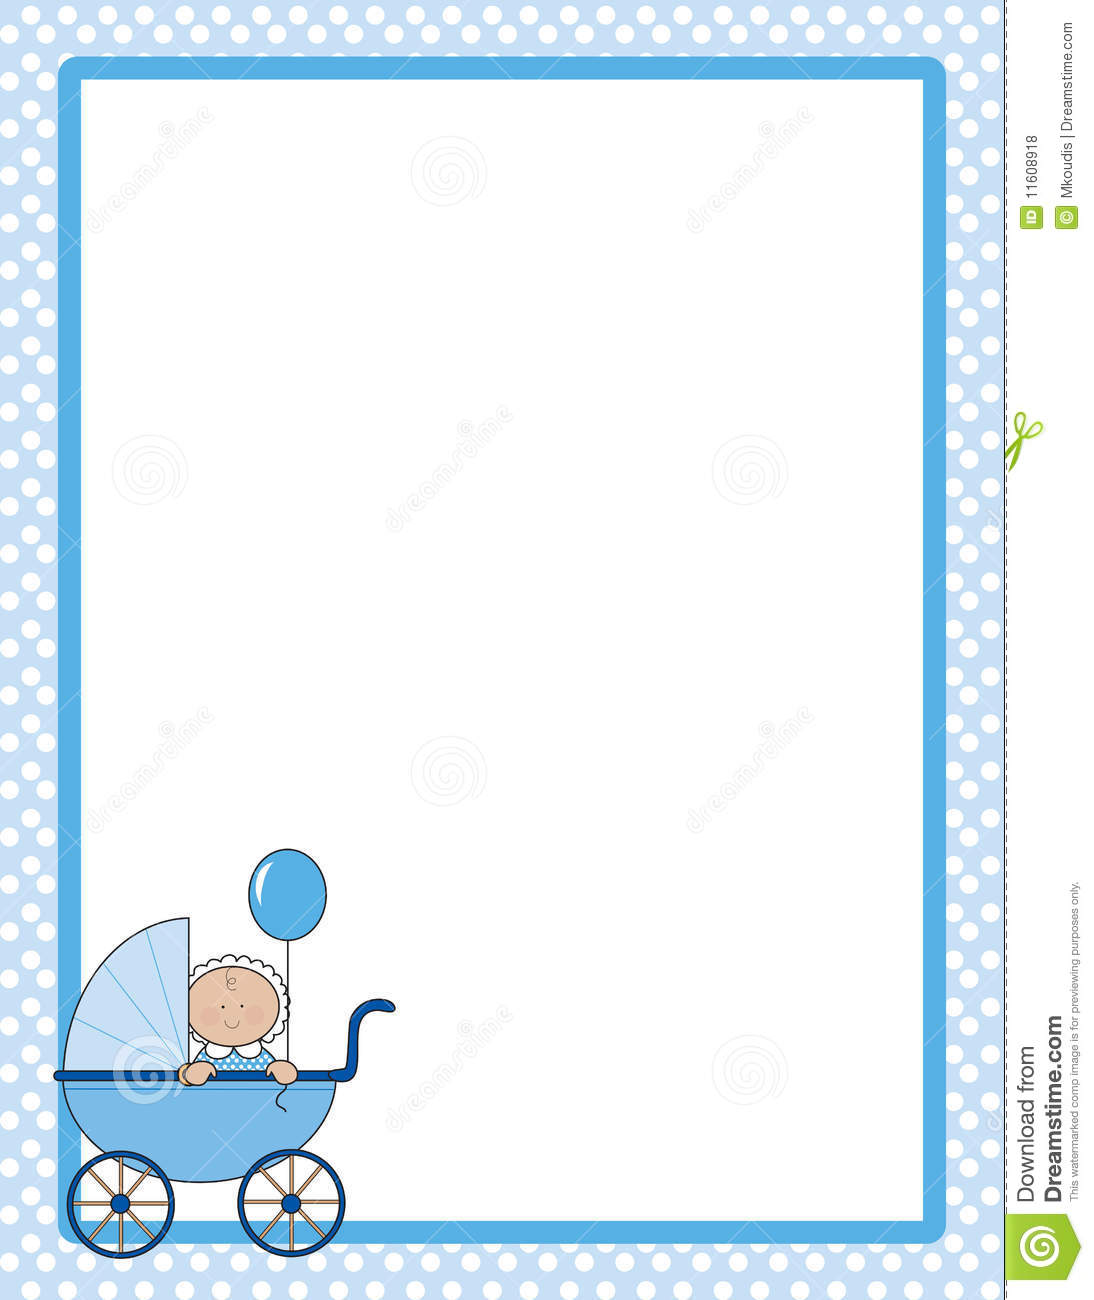 Baby Border Boy stock illustration. Illustration of blue ...